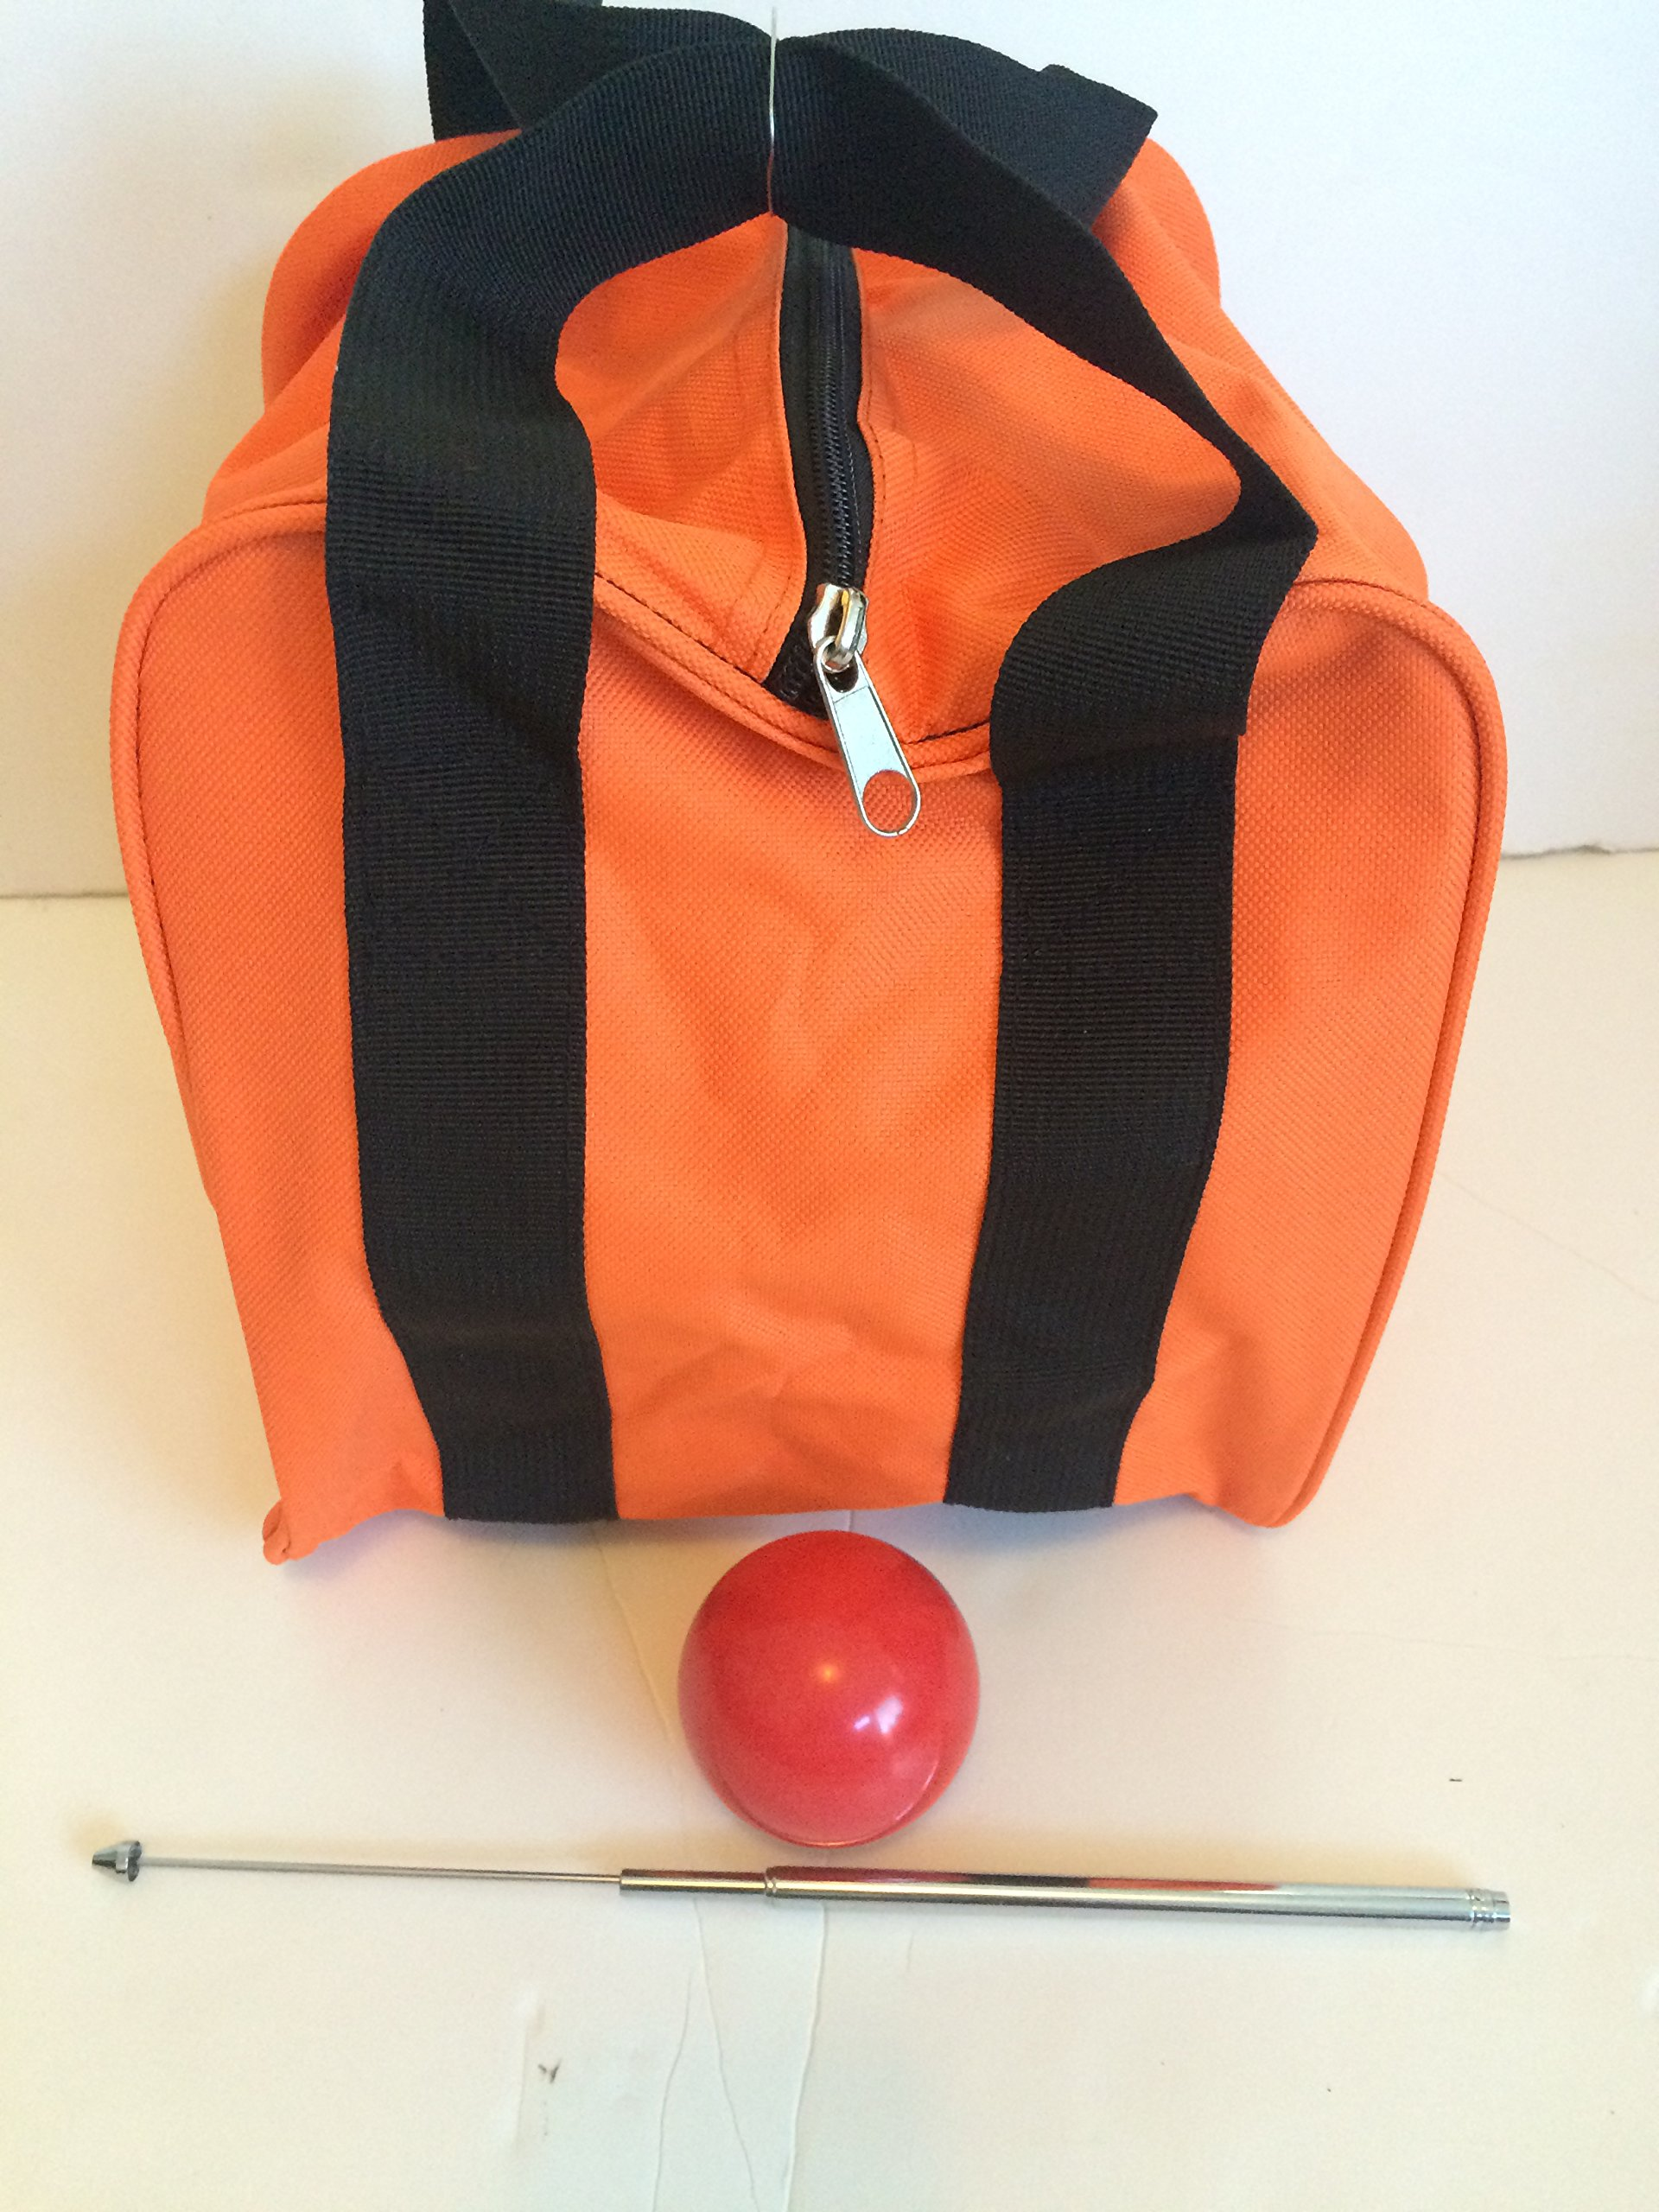 Unique Bocce Accessories Package - Extra Heavy Duty Nylon Bocce Bag (Orange with Black Handles), red pallina, Extendable Measuring Device by BuyBocceBalls